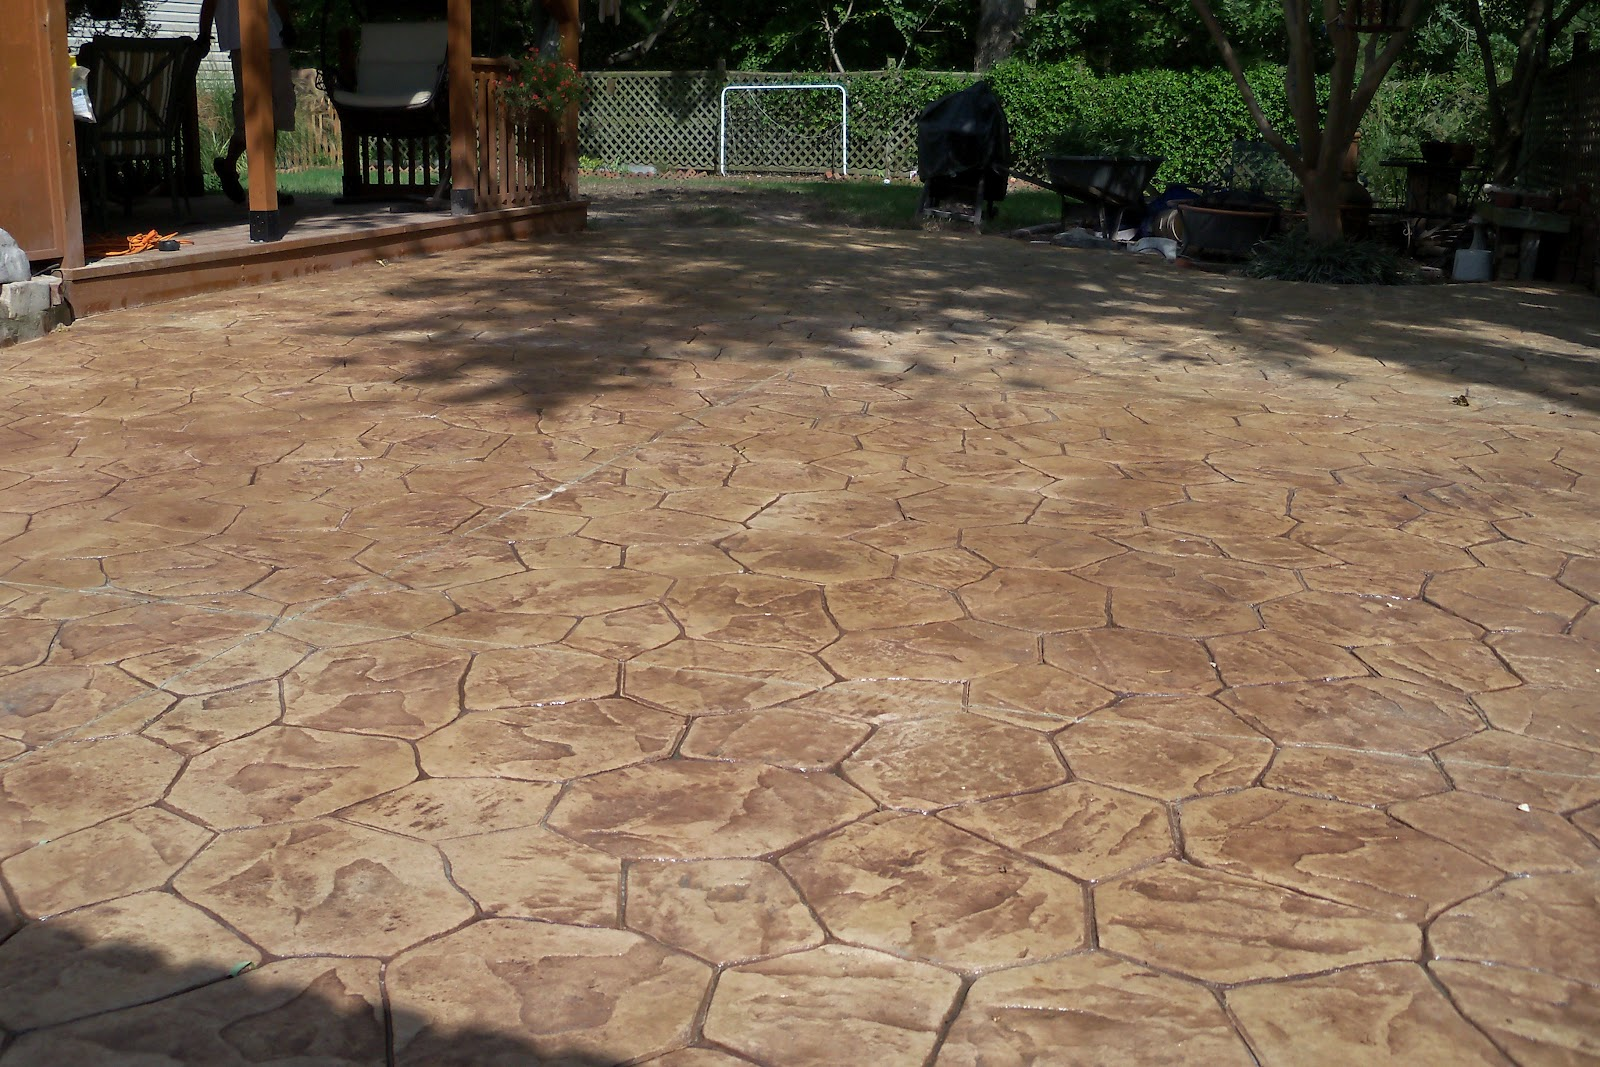 Backyard patio ideas with cool stamped concrete patio designs flooring options for backyard floor design